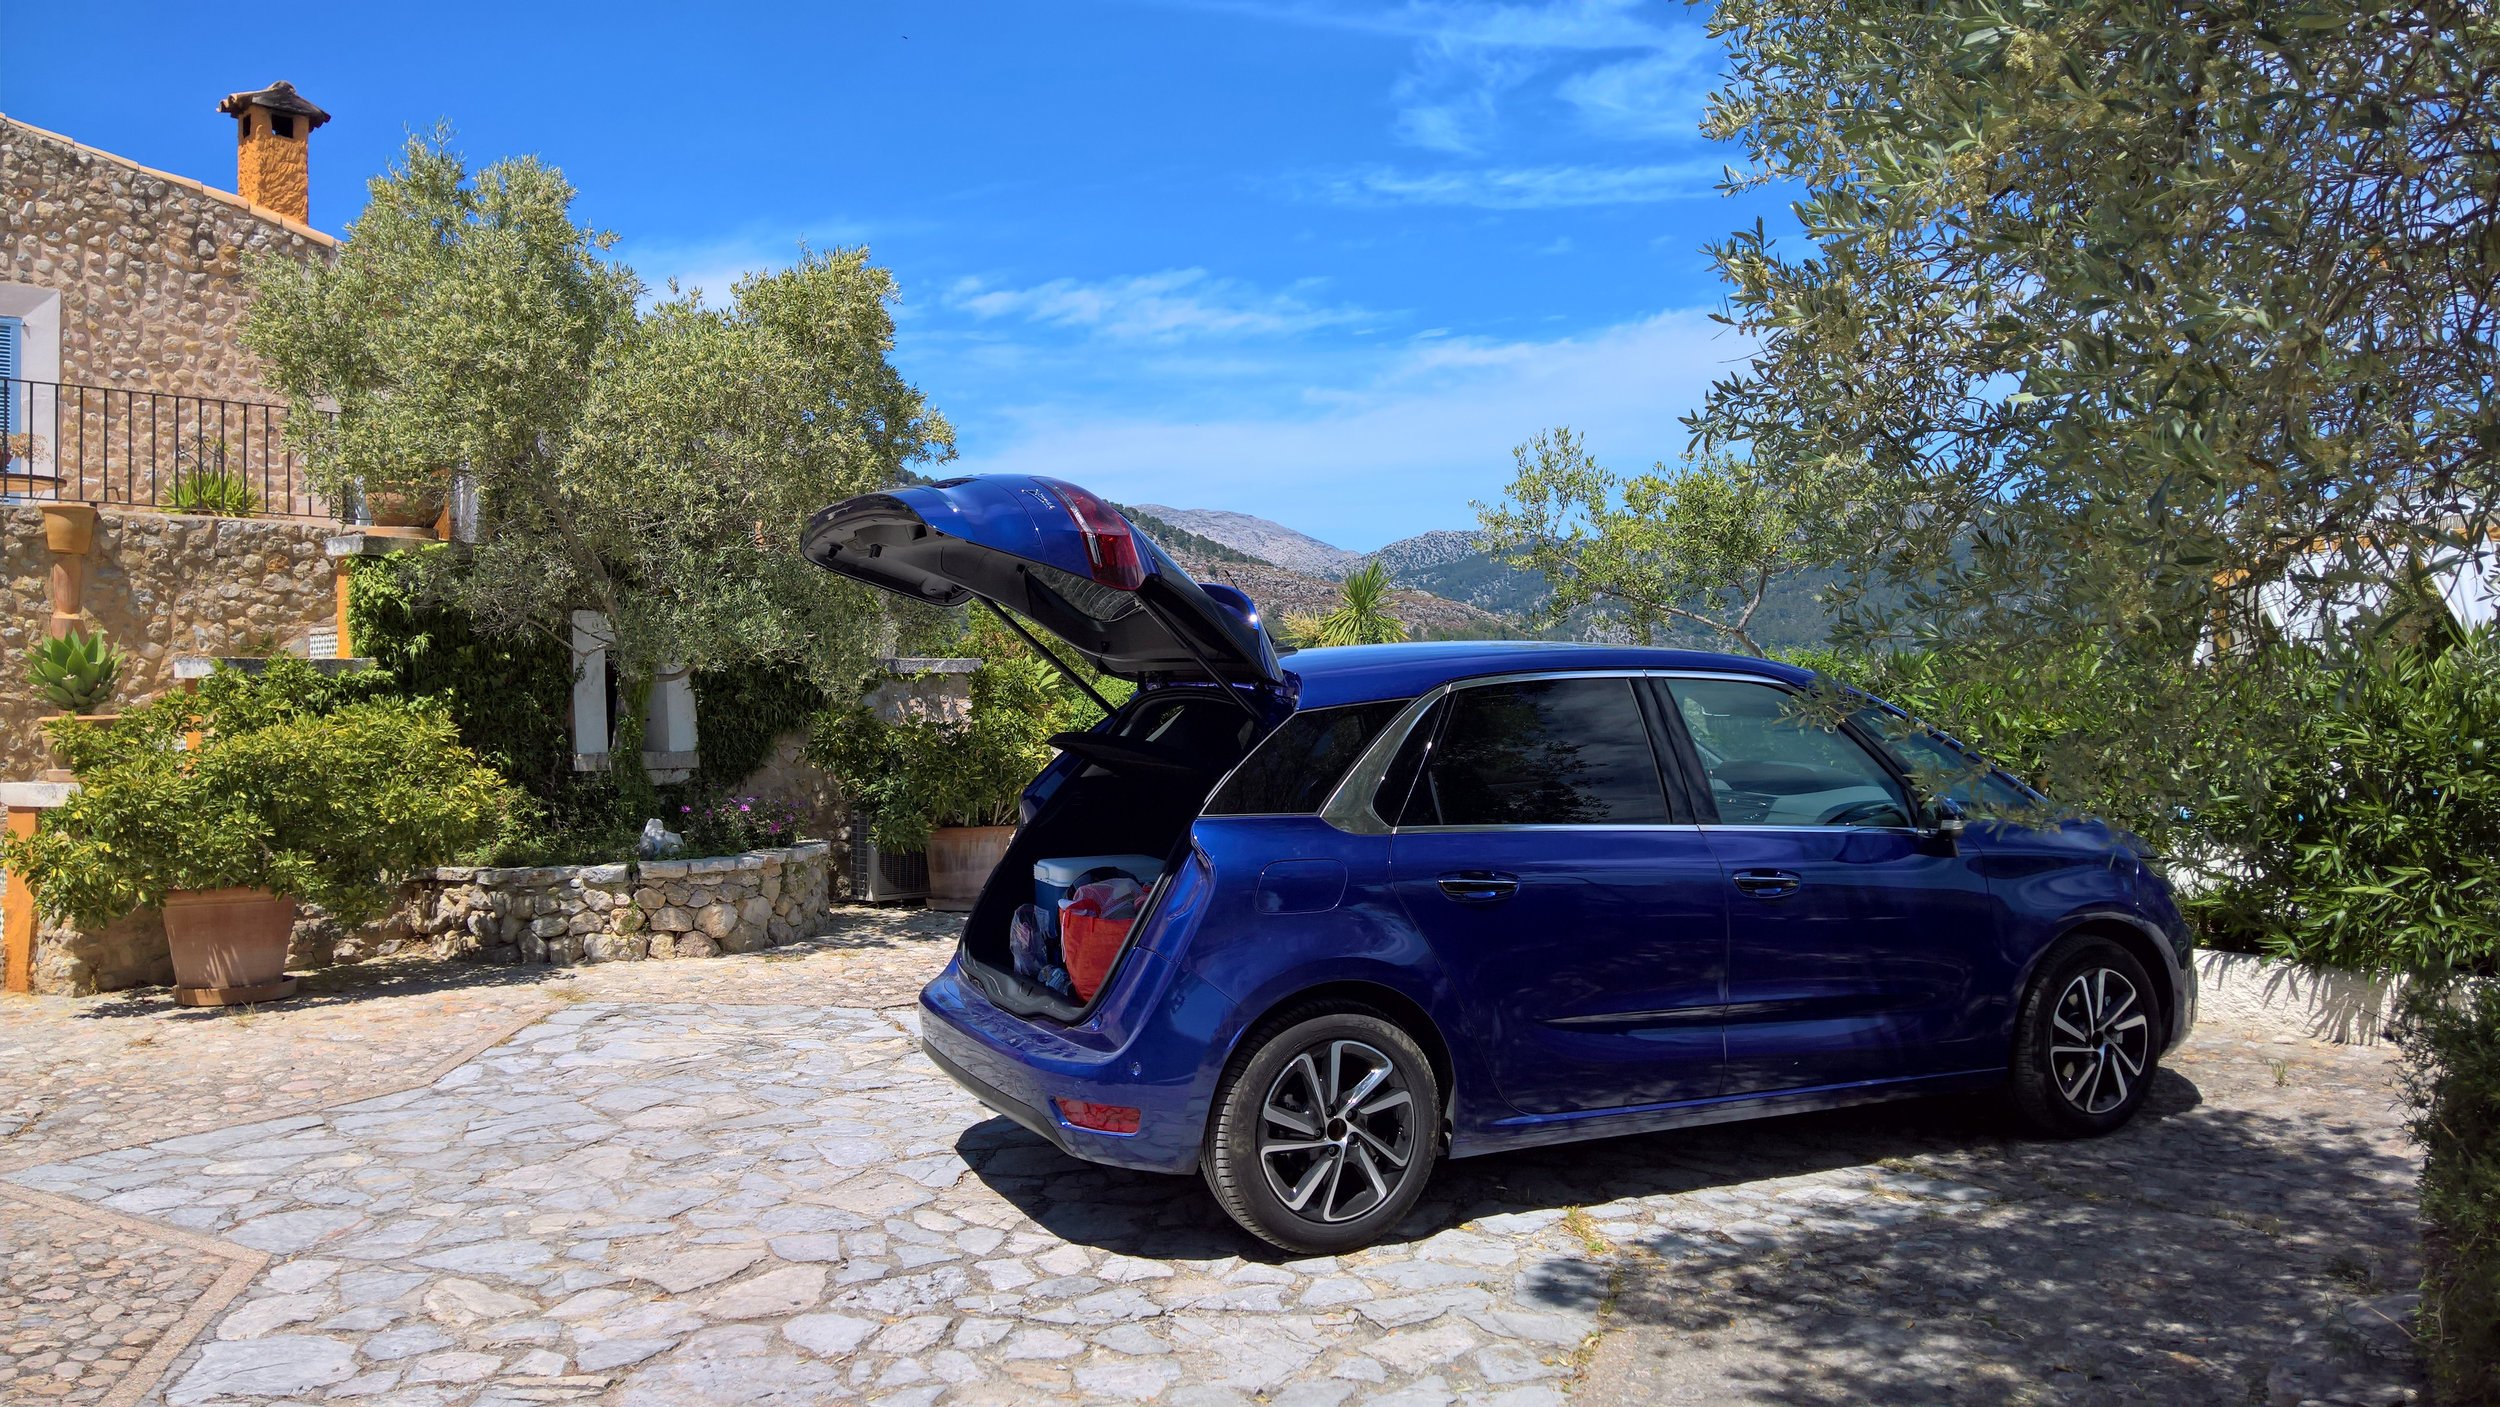 We've arrived! This was a Citreon Picasso C4, lots of room and very easy to drive round Majorca!